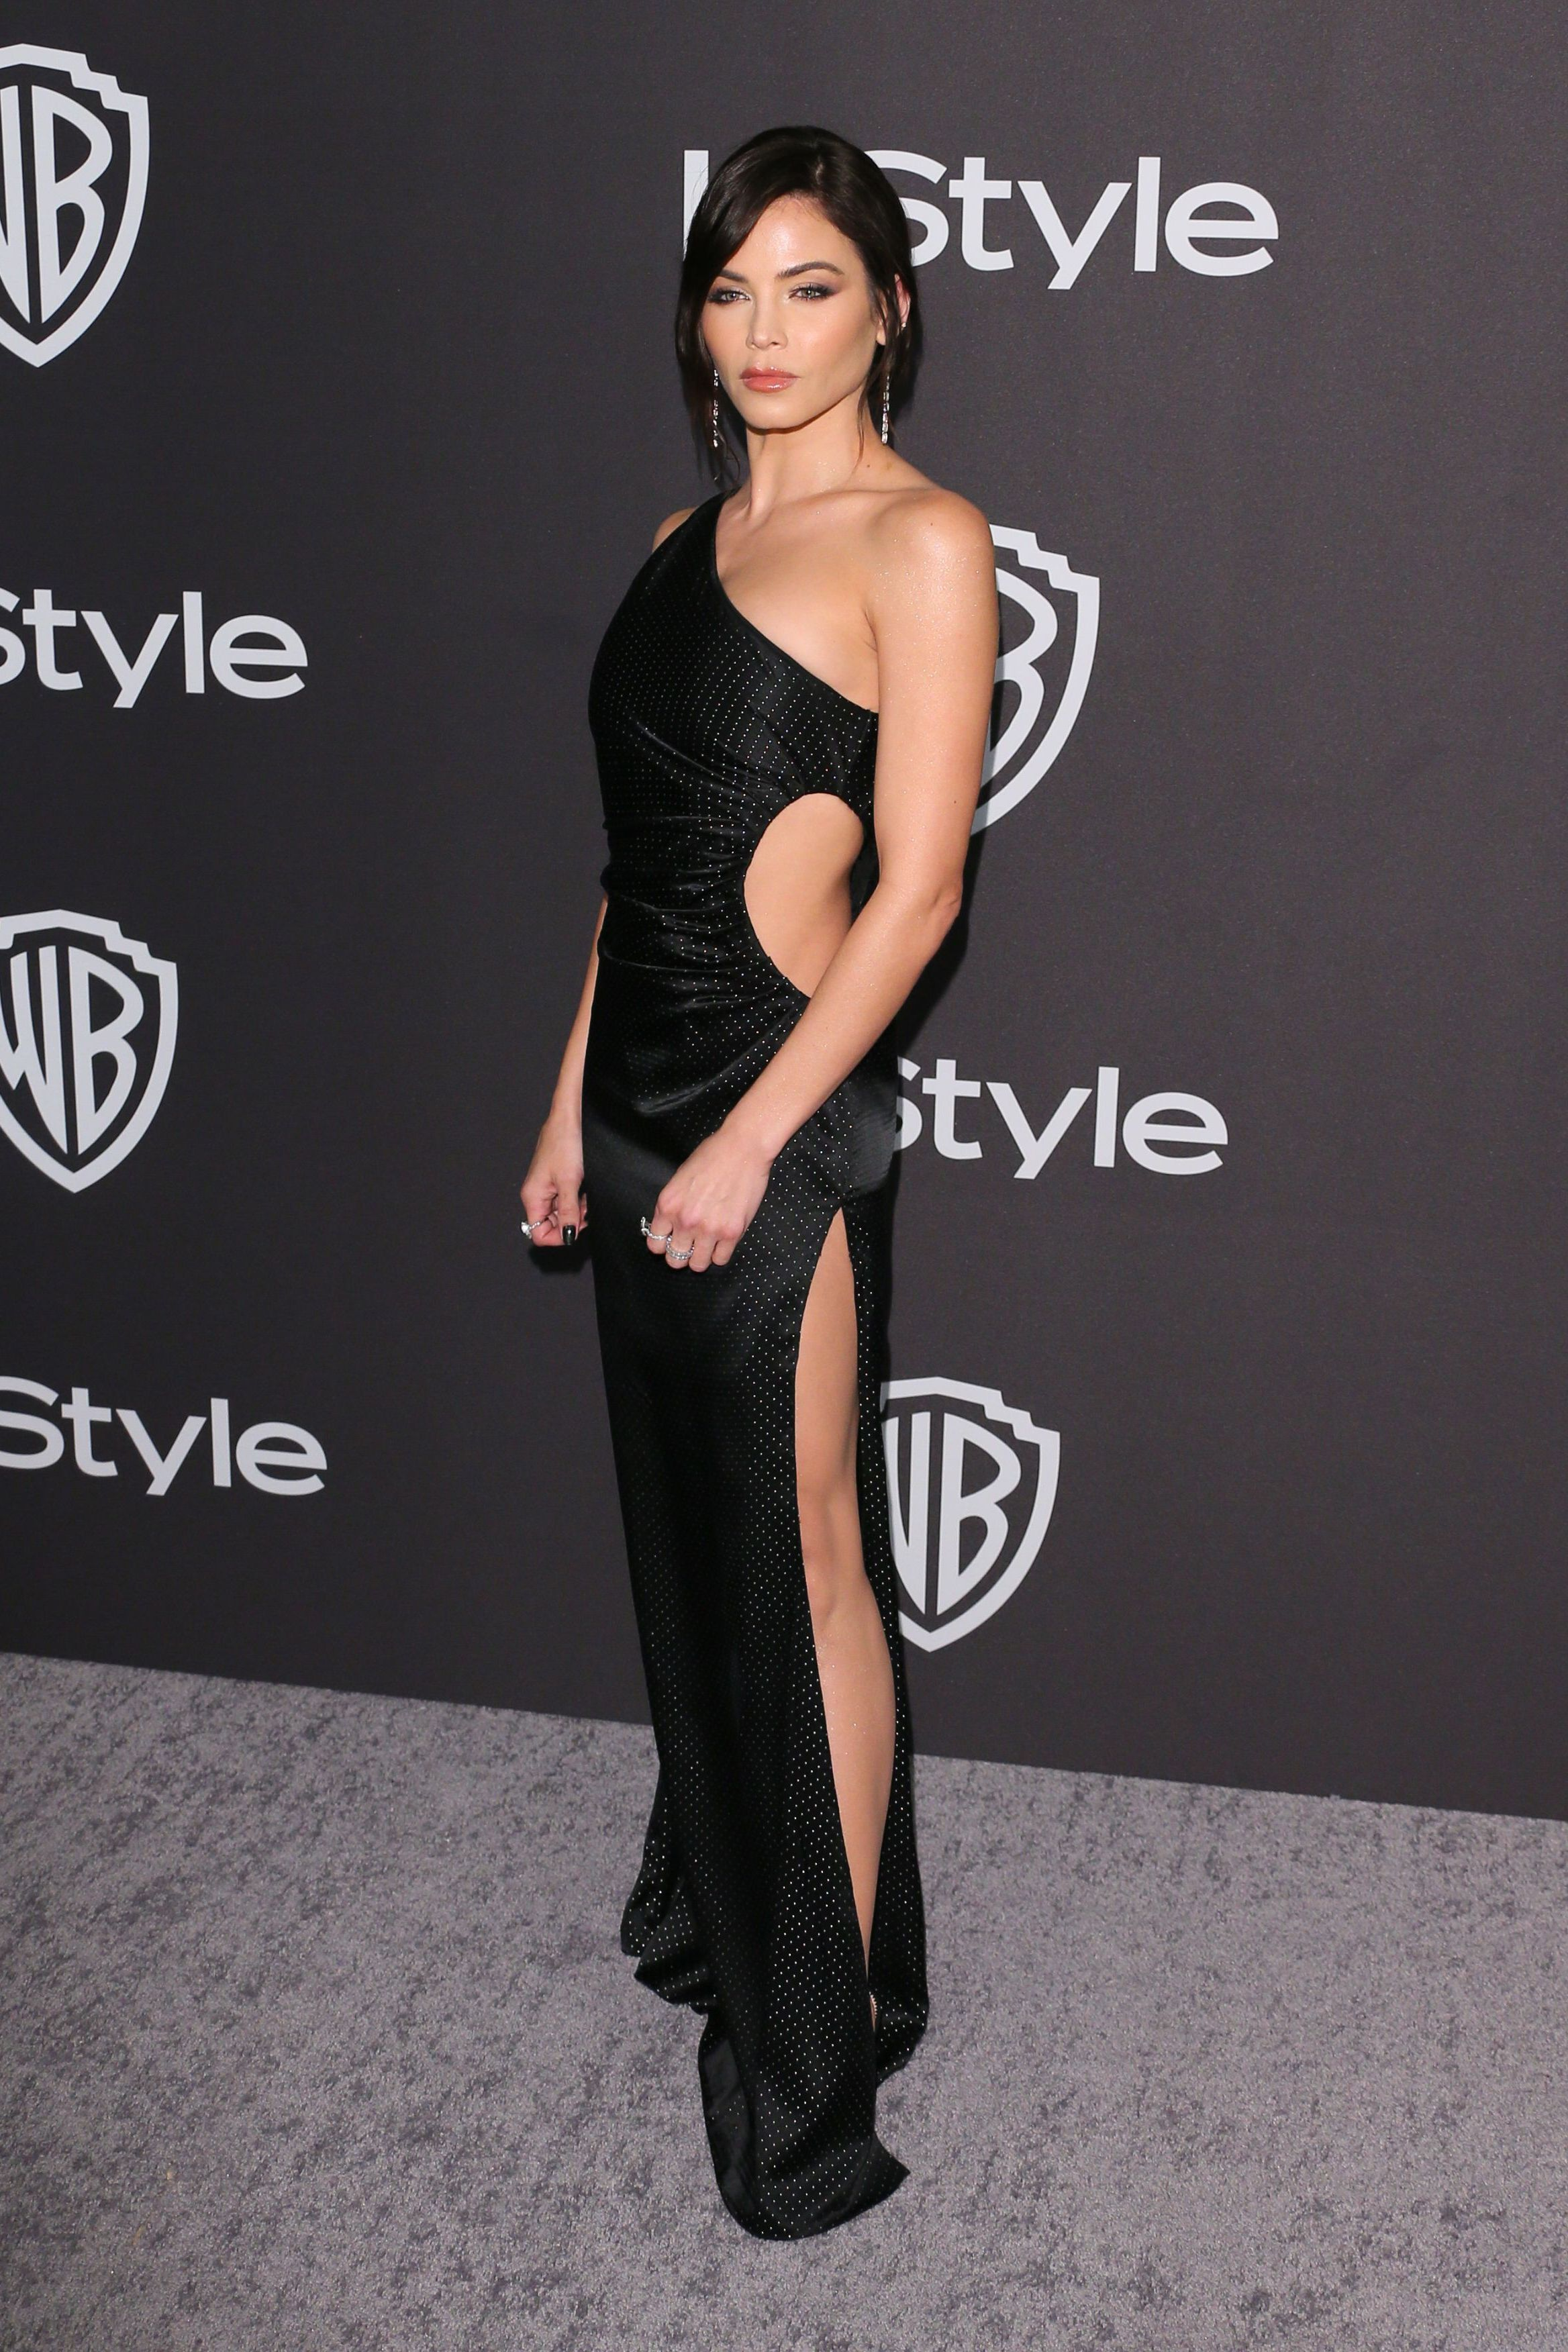 Jenna Dewan Dewan attended the InStyle and Warner Bros.